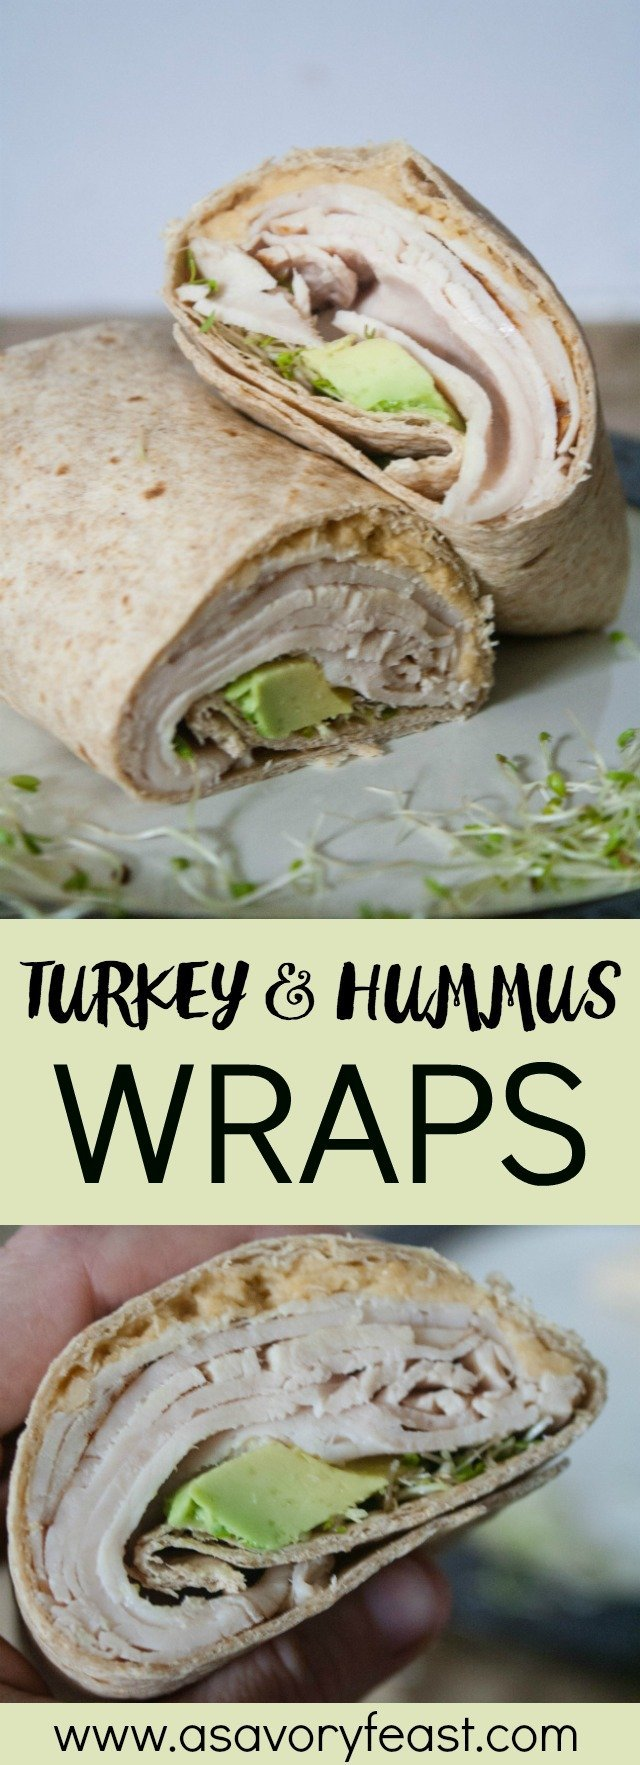 Lunch time doesn't have to be a struggle. Make something that is healthy, flavorful and quick with these Turkey & Hummus Wraps. Use lunch meat or leftover turkey and add it to a tortilla along with hummus, avocado and sprouts.